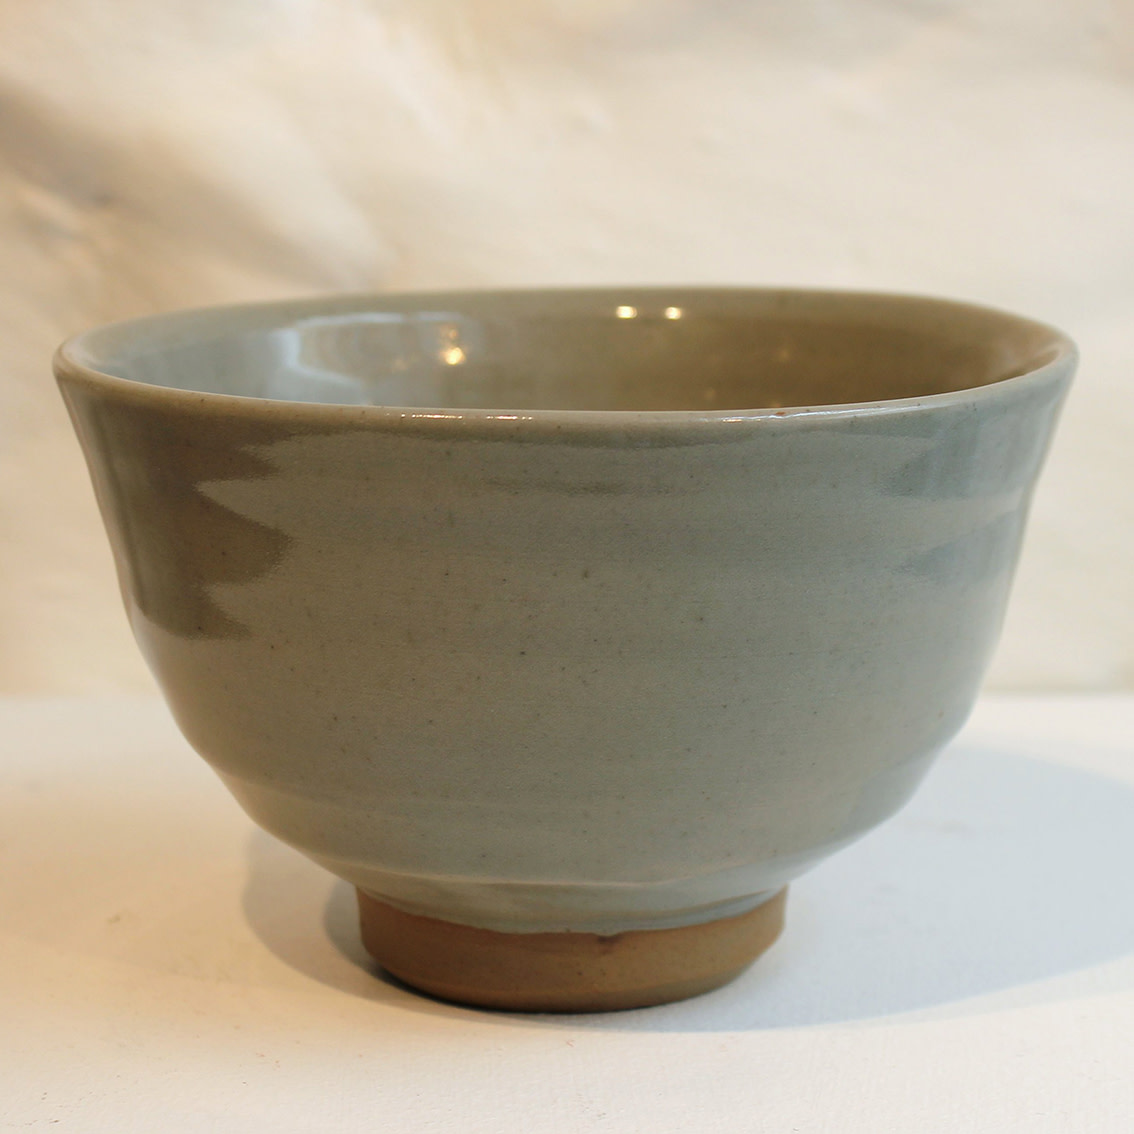 "<span class=""link fancybox-details-link""><a href=""/artists/200-matthew-tyas/works/5447-matthew-tyas-ying-ching-porcelain-chawan-bowl-2018/"">View Detail Page</a></span><div class=""artist""><strong>Matthew Tyas</strong></div> <div class=""title""><em>Ying Ching Porcelain Chawan Bowl</em>, 2018</div> <div class=""signed_and_dated"">stamped by the artist</div> <div class=""medium"">glazed thrown porcelain</div><div class=""price"">£75.00</div><div class=""copyright_line"">Copyright The Artist</div>"